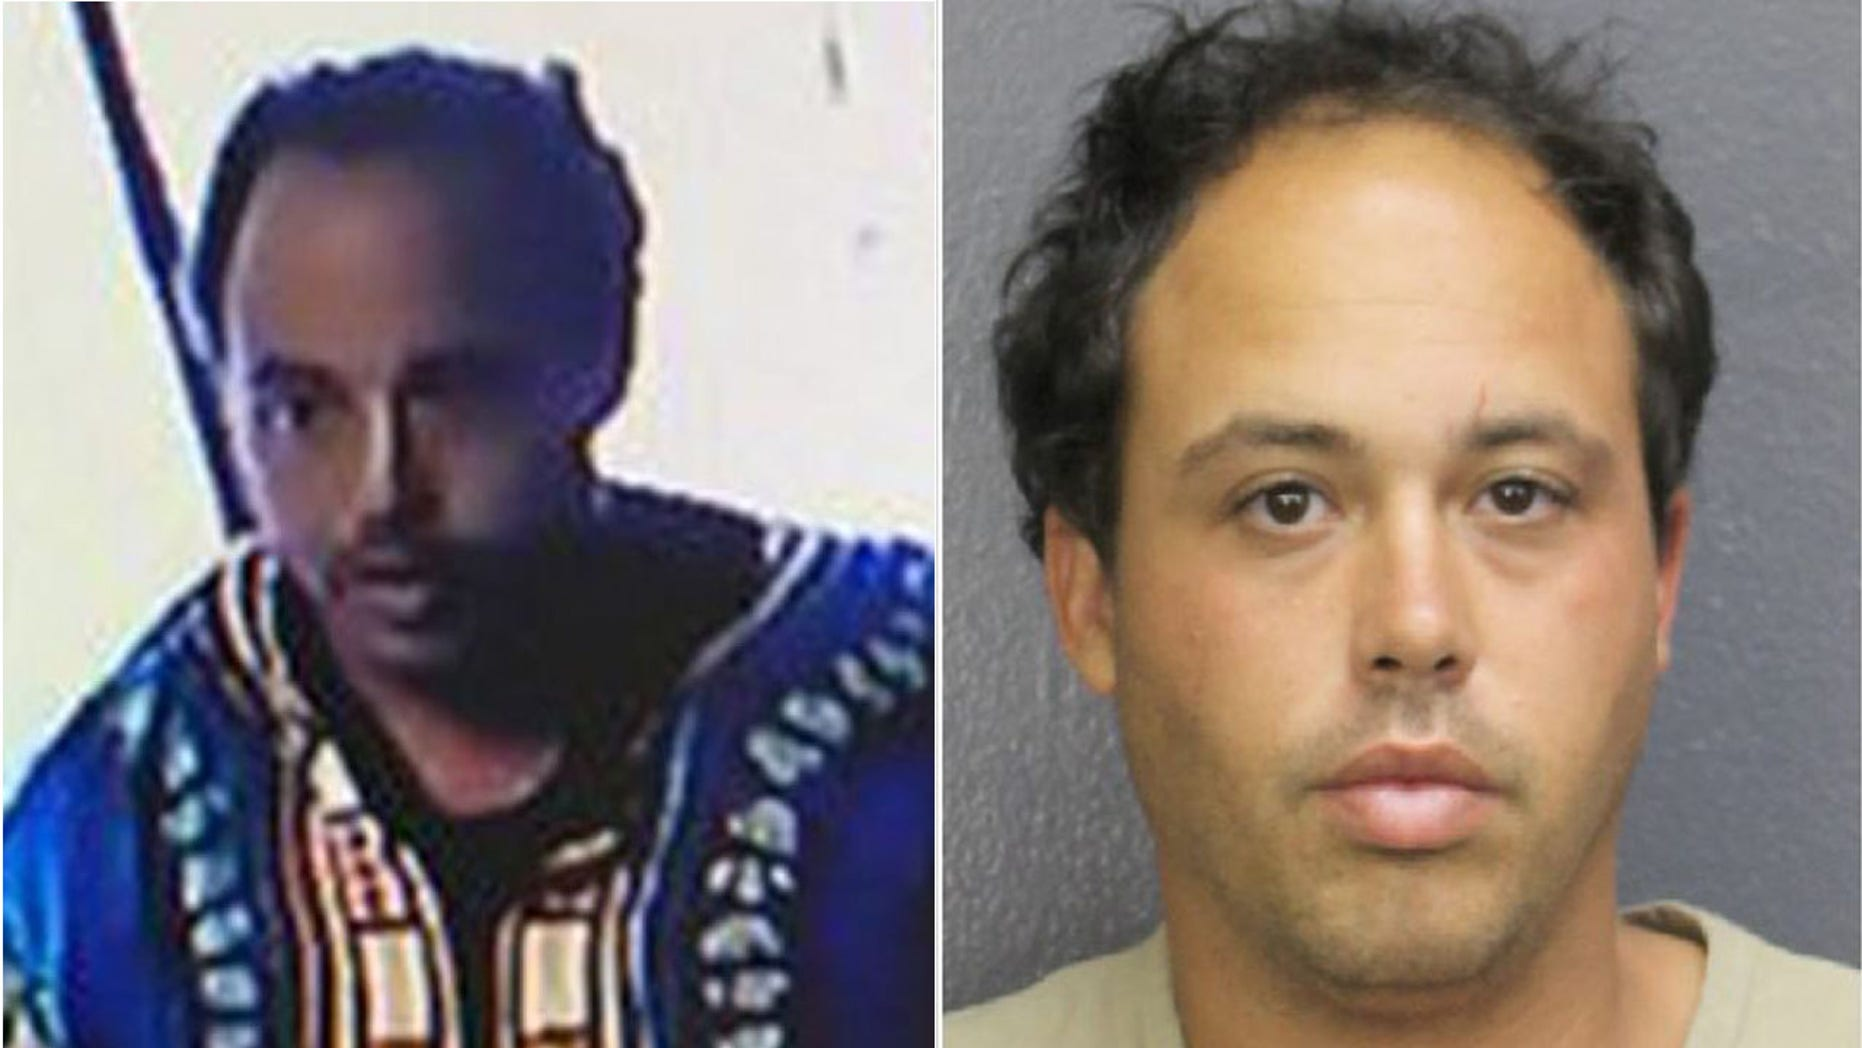 Jacob Fought, 31, has been accused in the March 21 murder of a South Florida massage parlor worker after being identified as a person of interest in the case last week.